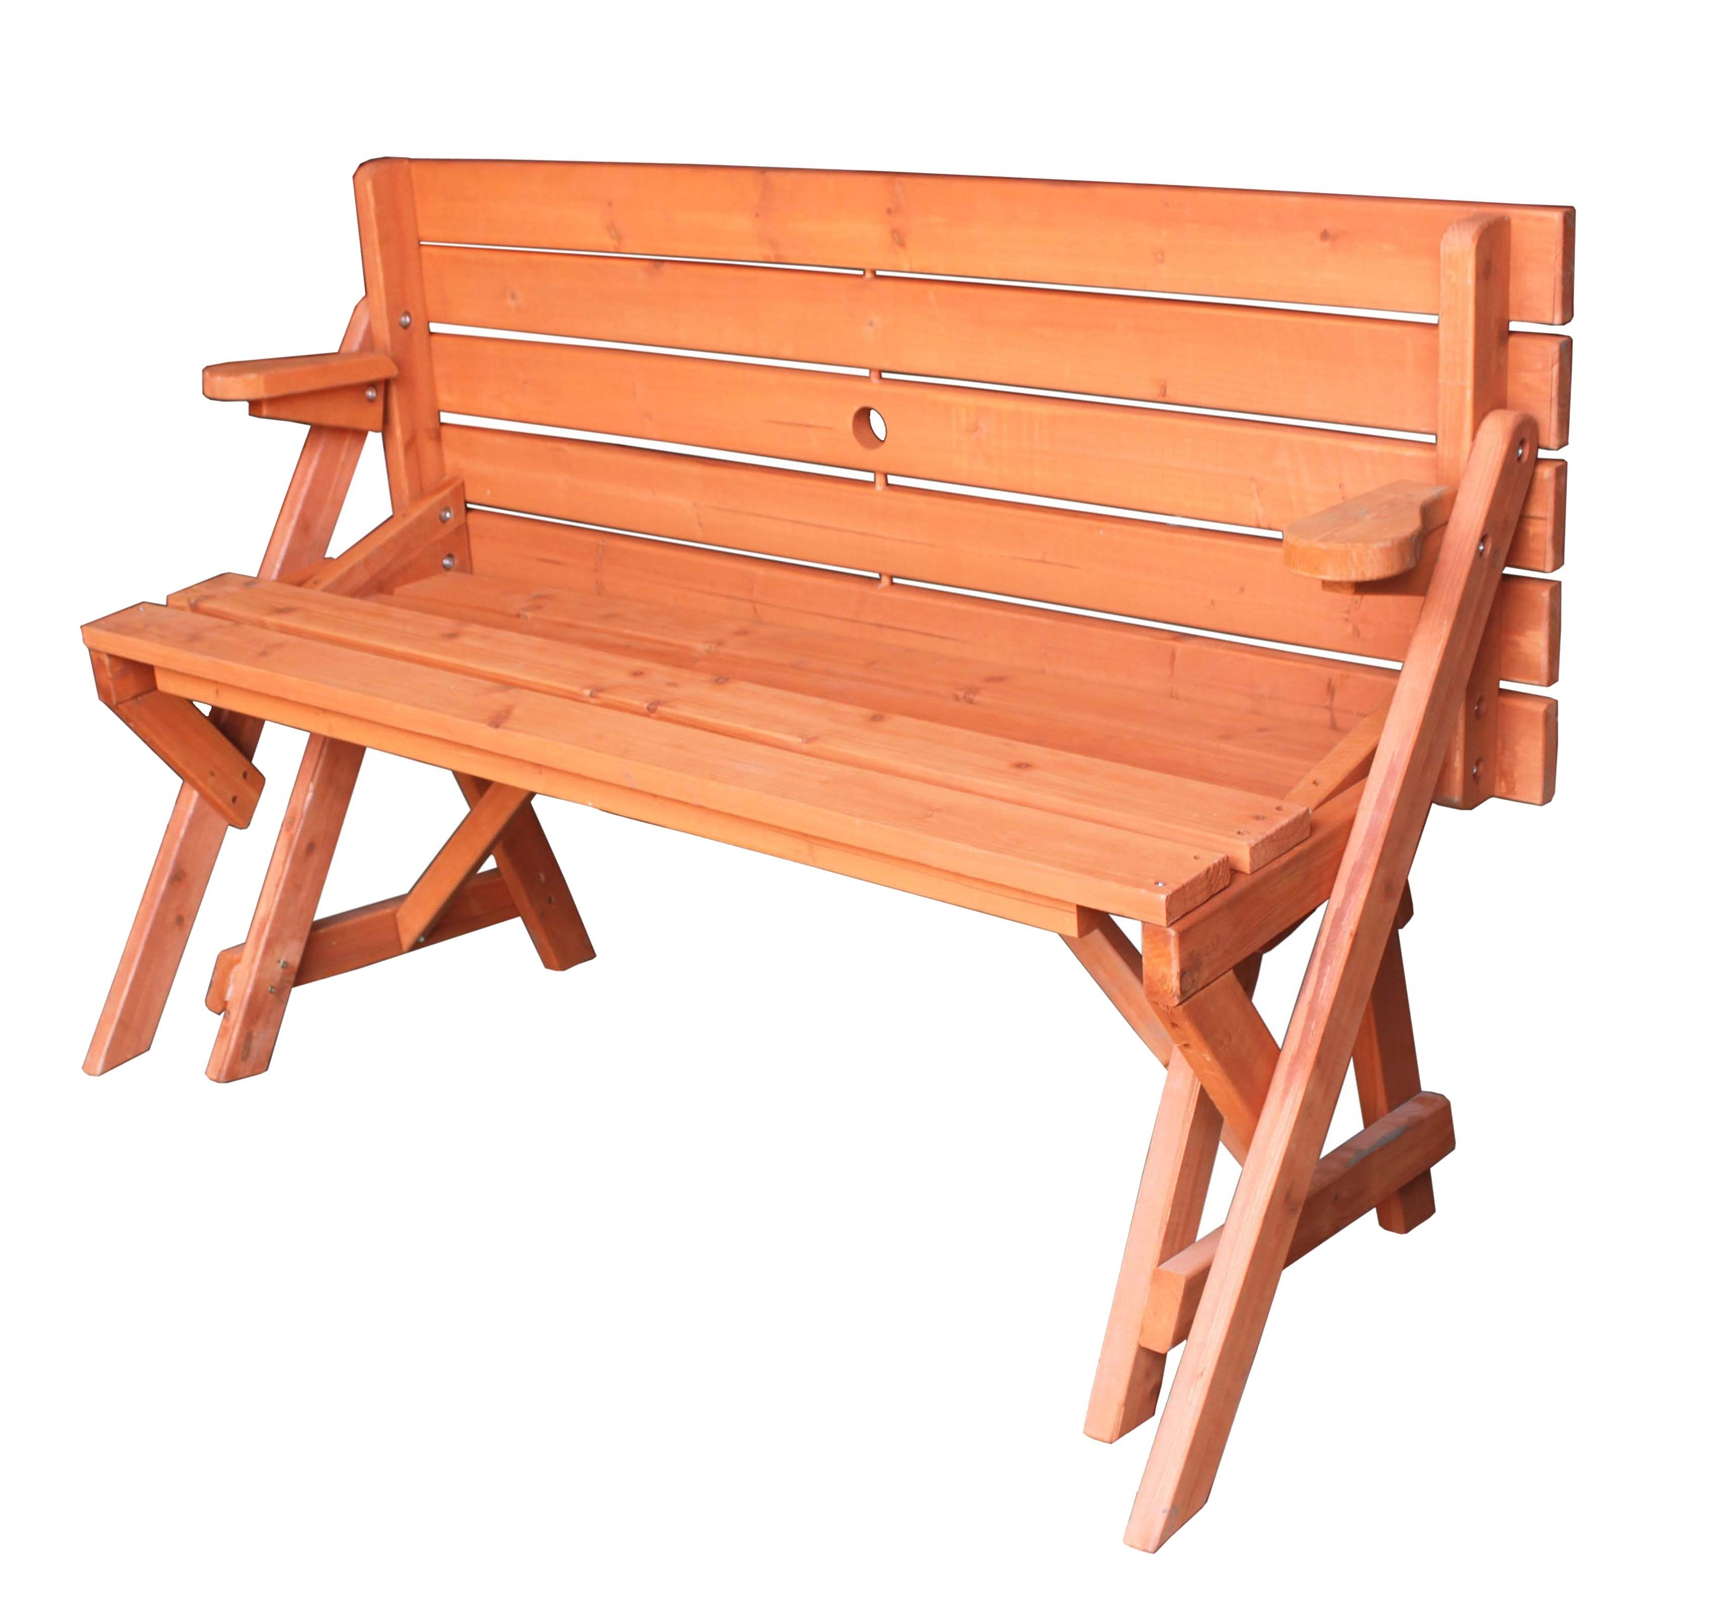 wood best metal benches bench workbench industrial storage ideas folding with on